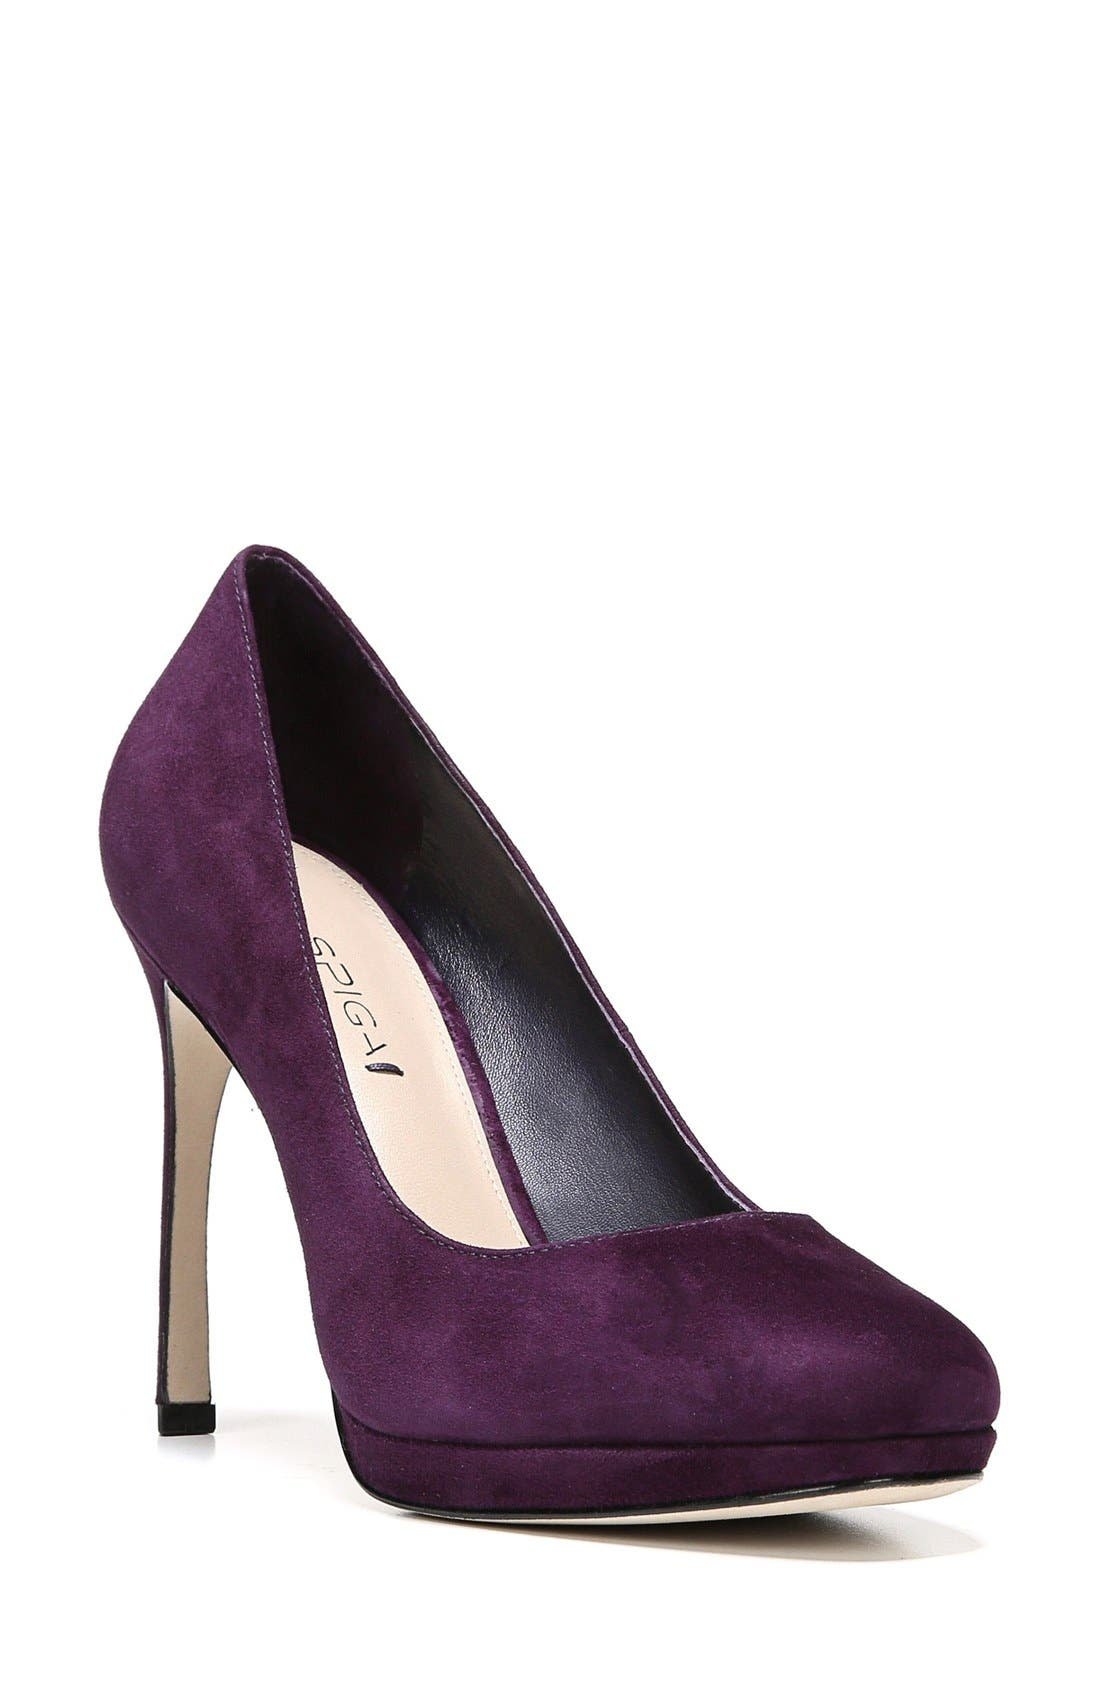 Alternate Image 1 Selected - Via Spiga 'Siena' Platform Pump (Women)